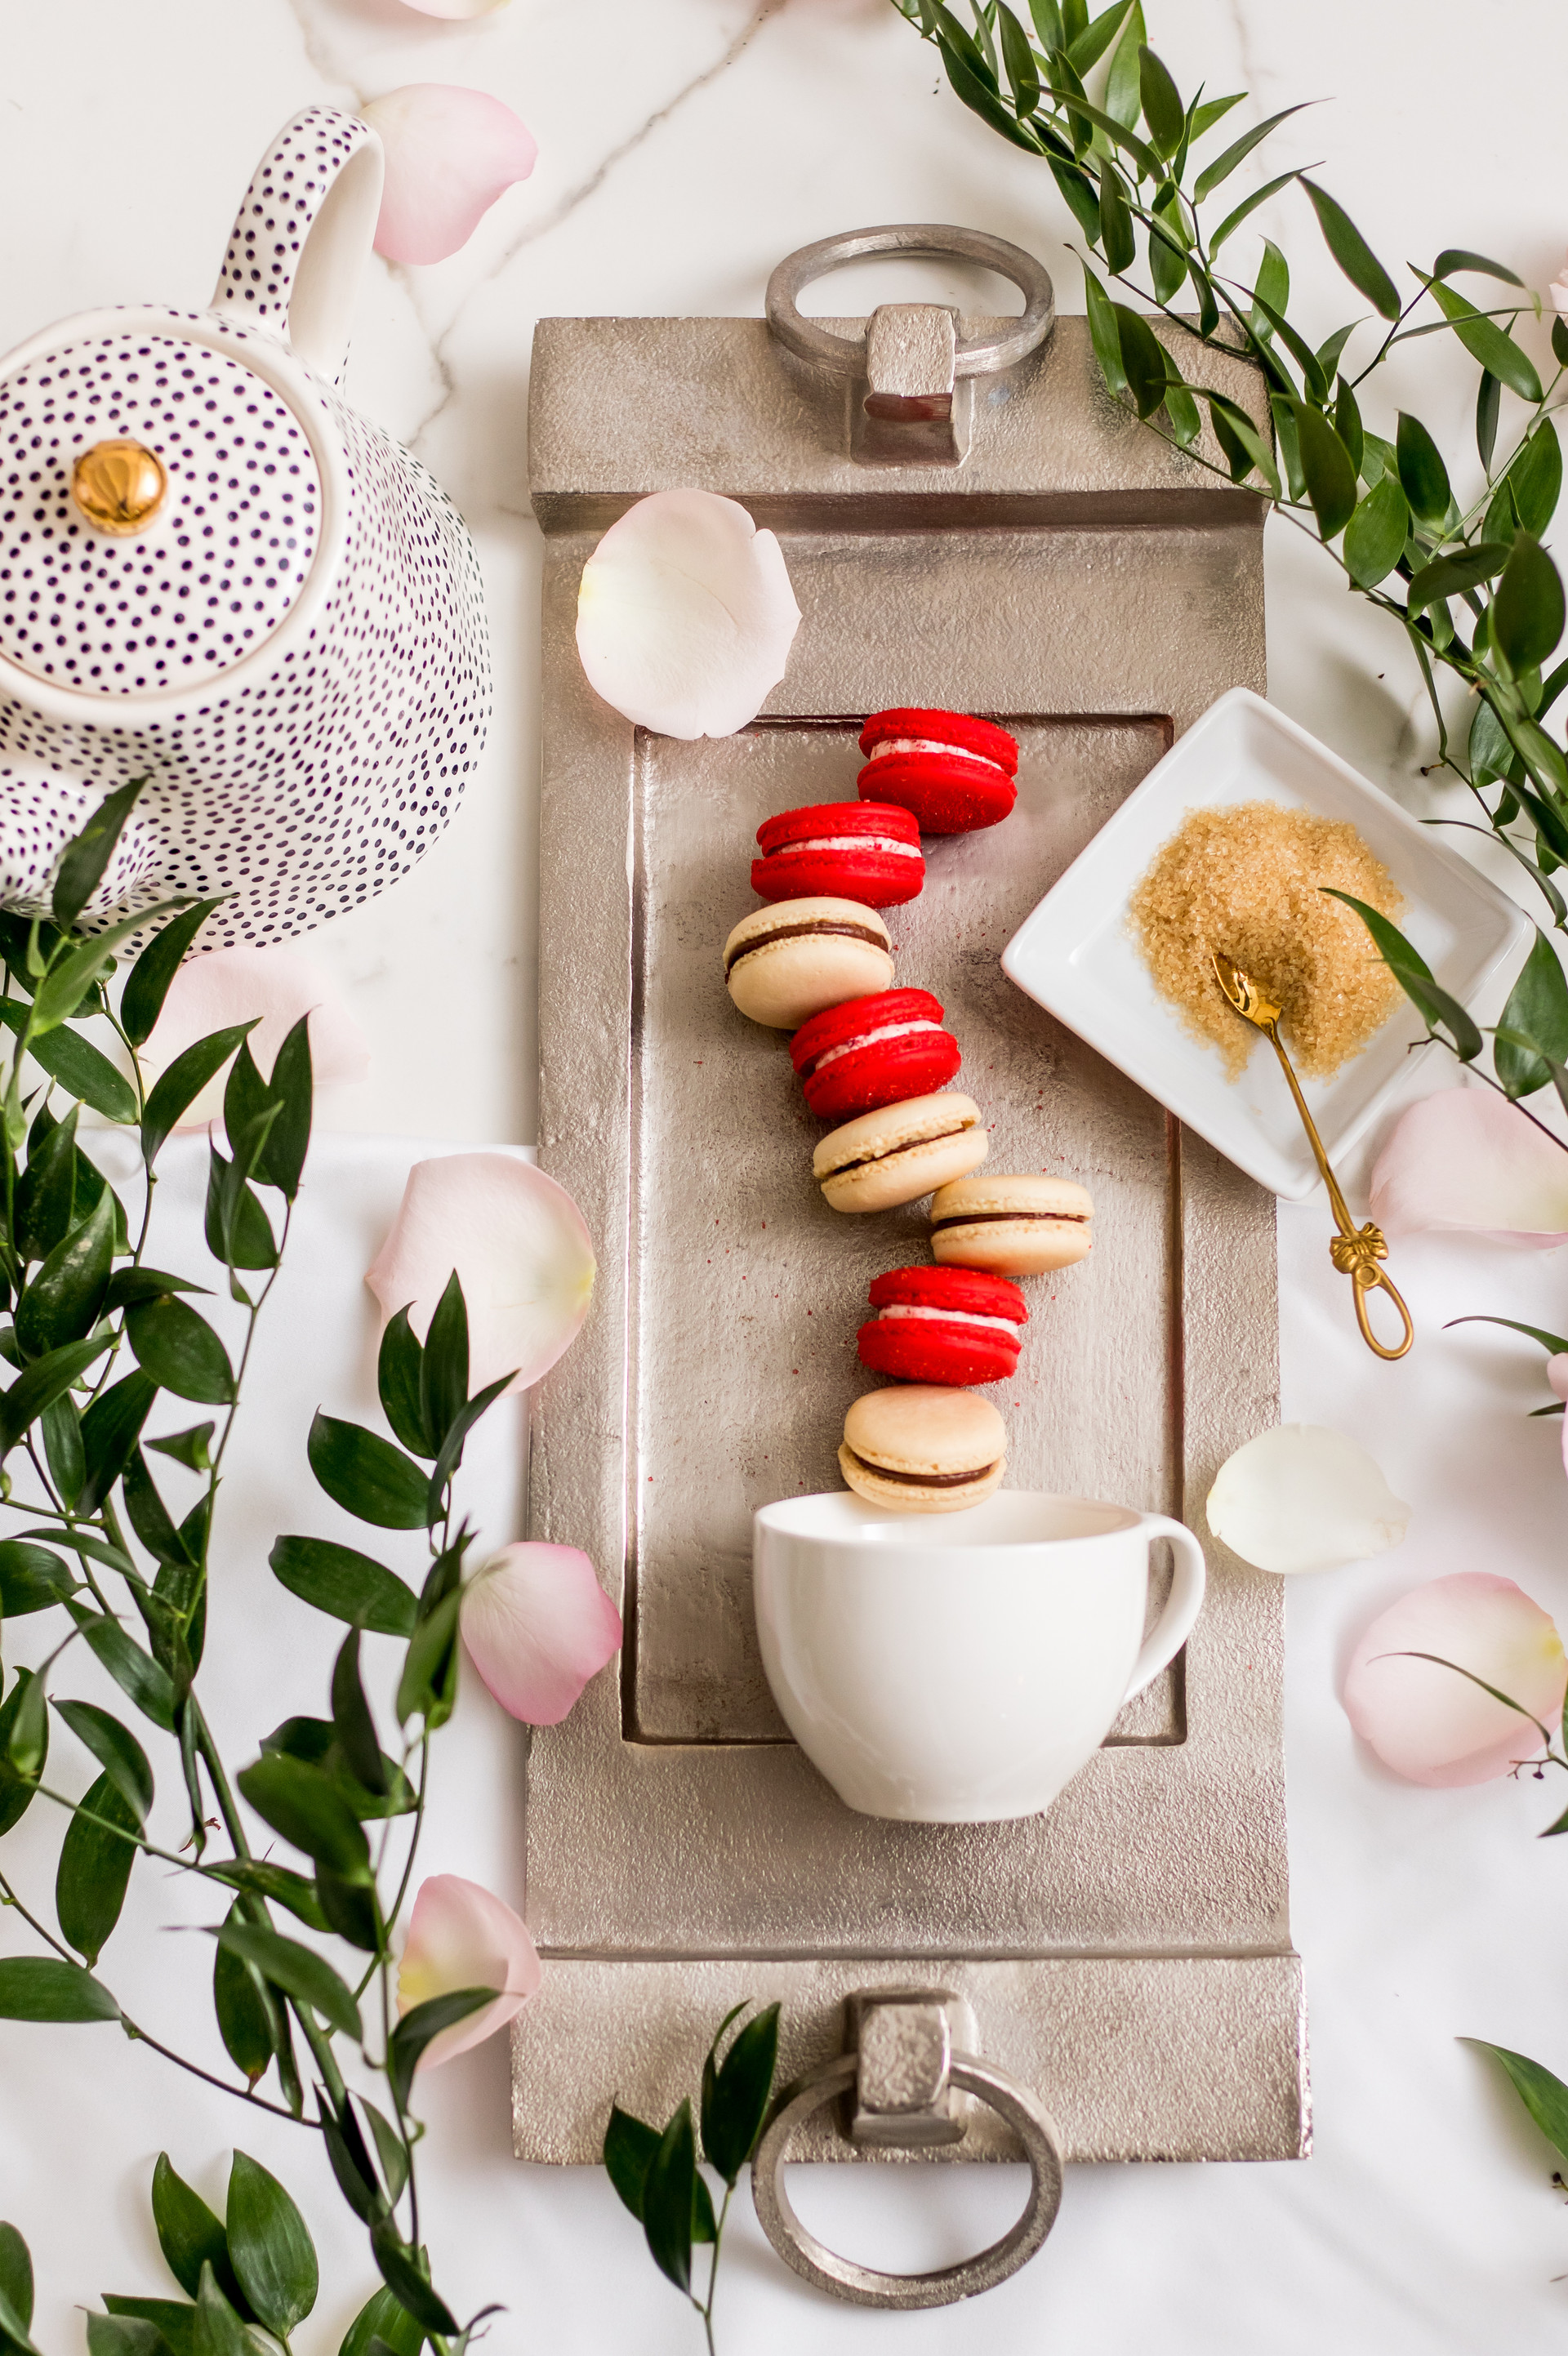 Macarons on silver tray with teapot and